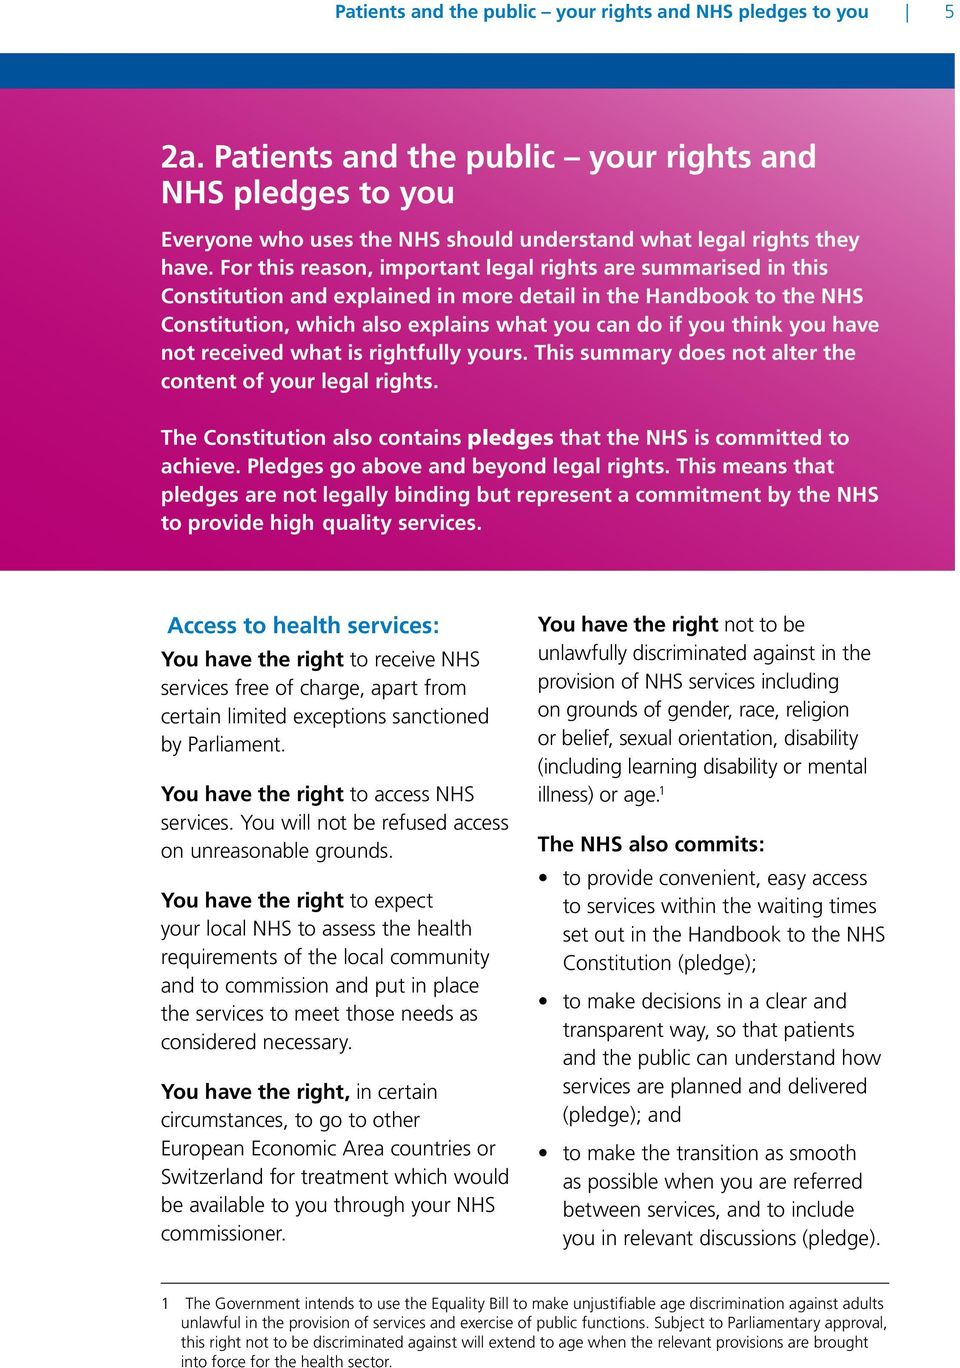 have not received what is rightfully yours. This summary does not alter the content of your legal rights. The Constitution also contains pledges that the NHS is committed to achieve.